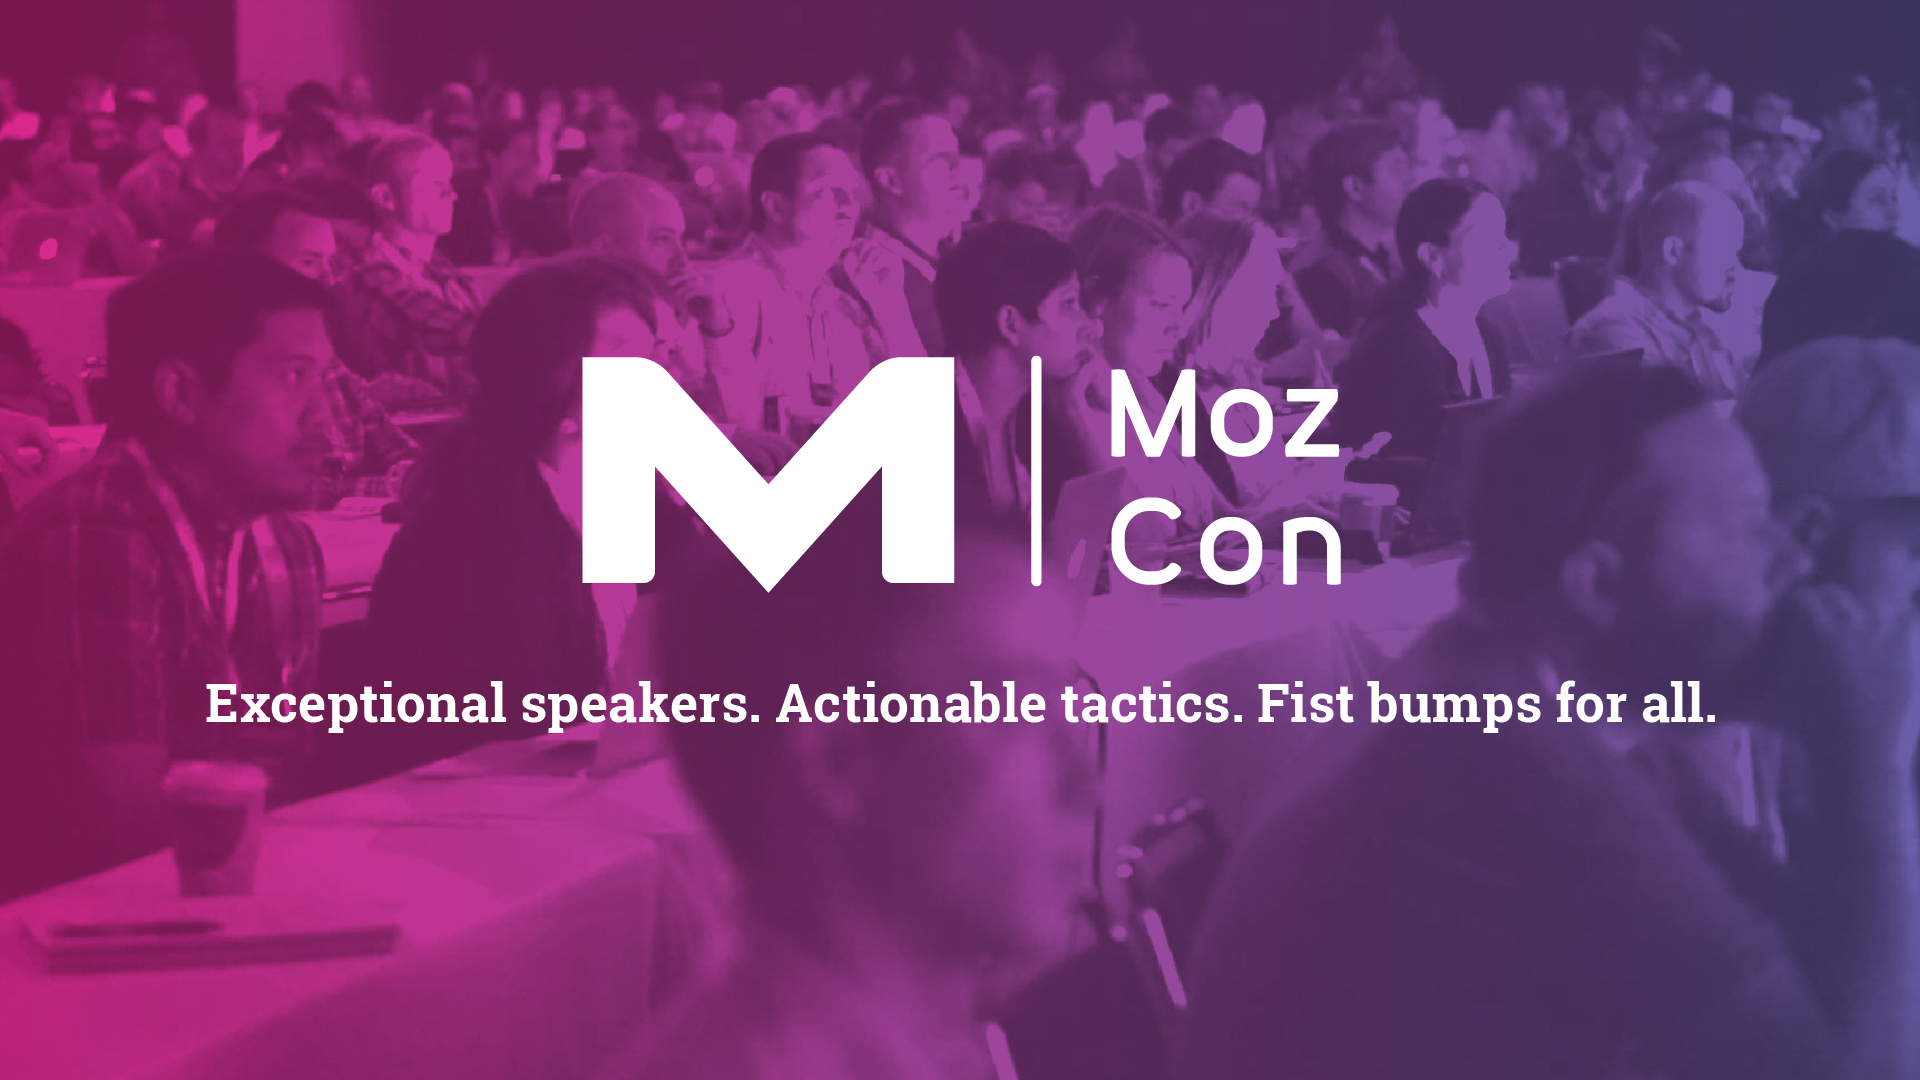 Well known Moz - MozCon July 9-11, 2018, a Digital Marketing Conference in  AJ96